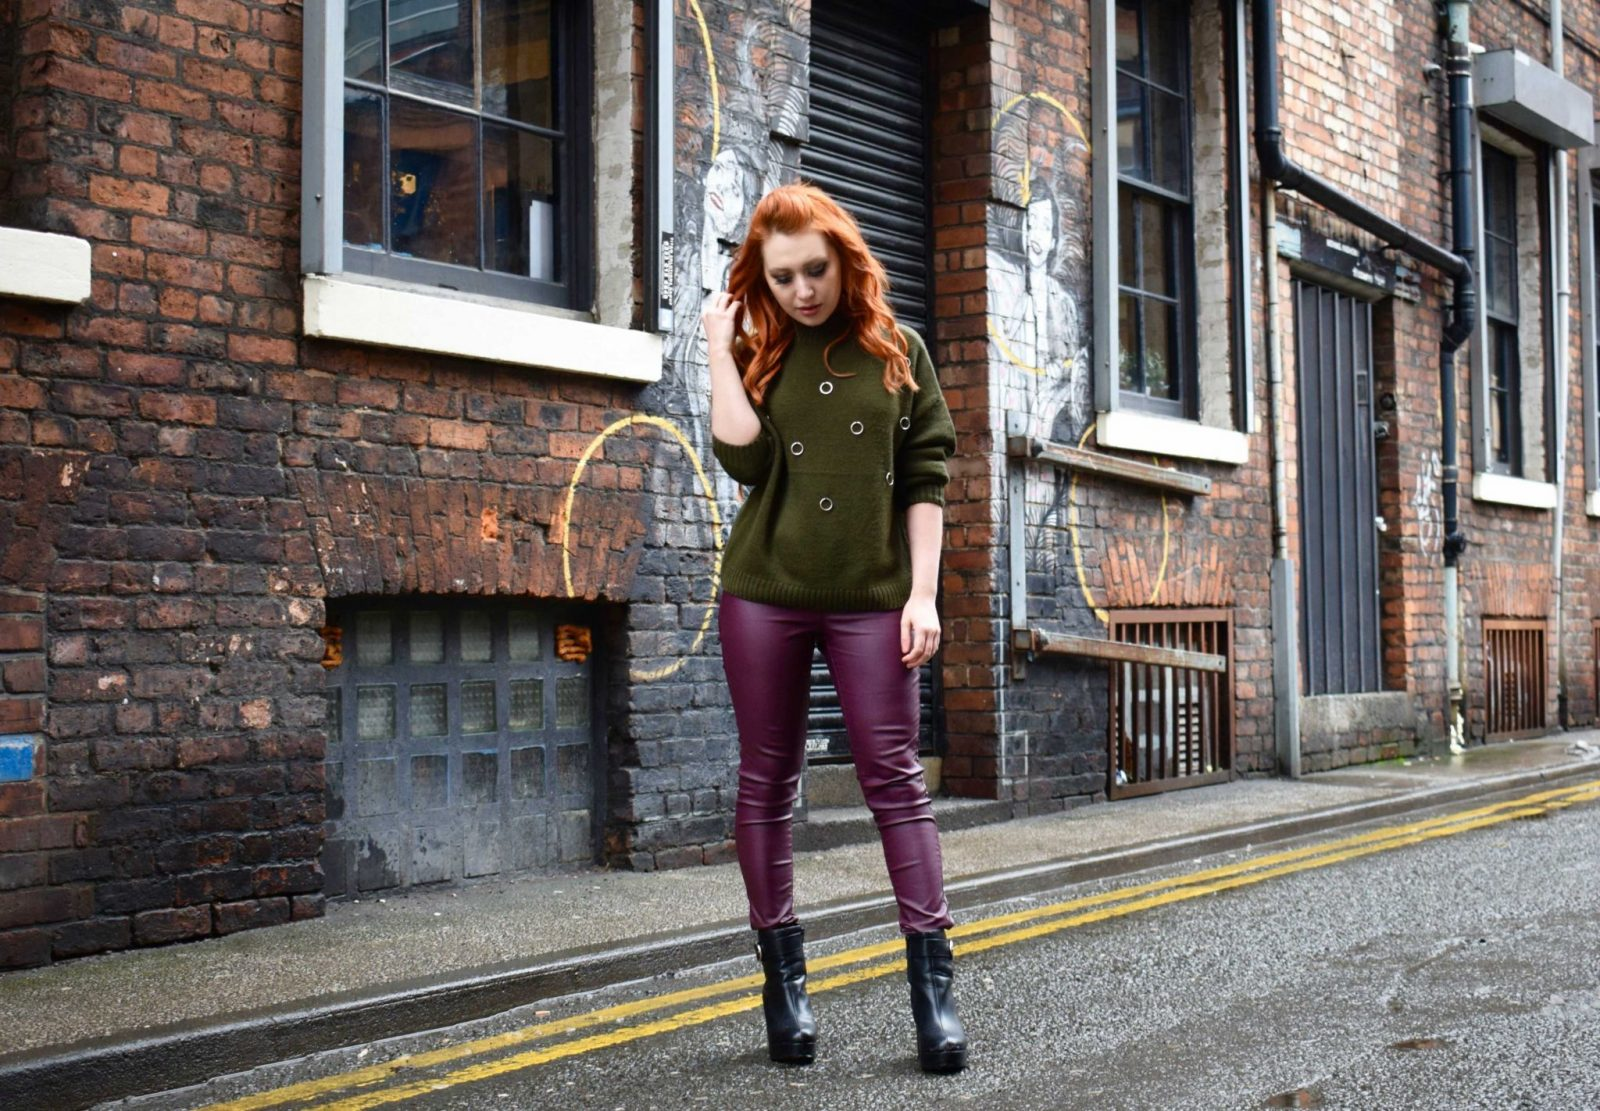 Blogger Twenty-Something City wearing cosy jumper and burgundy leather trousers in Northern Quarter Manchester